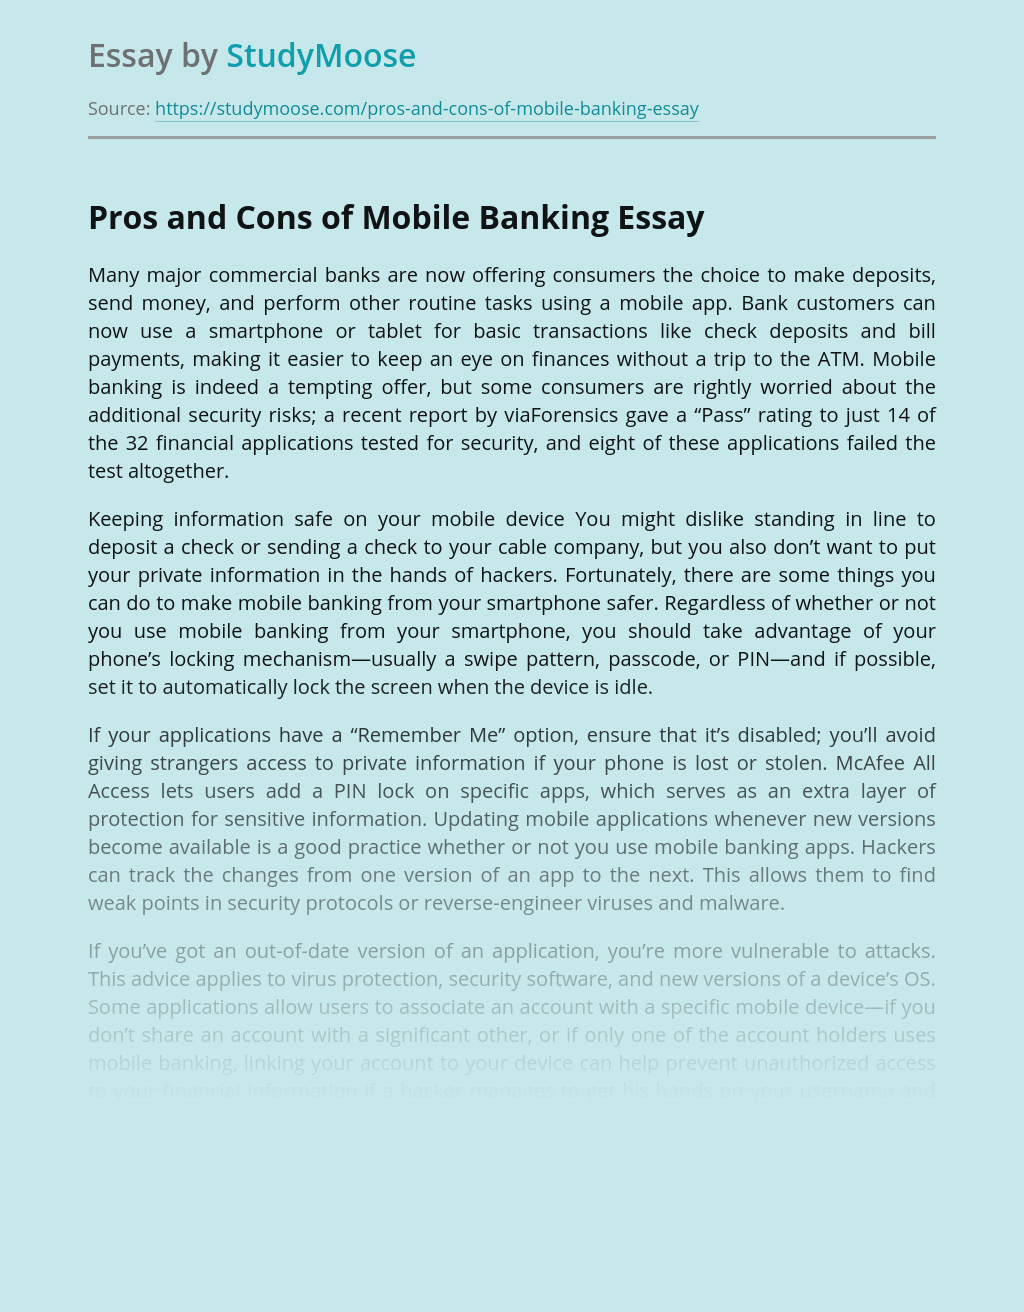 Pros and Cons of Mobile Banking